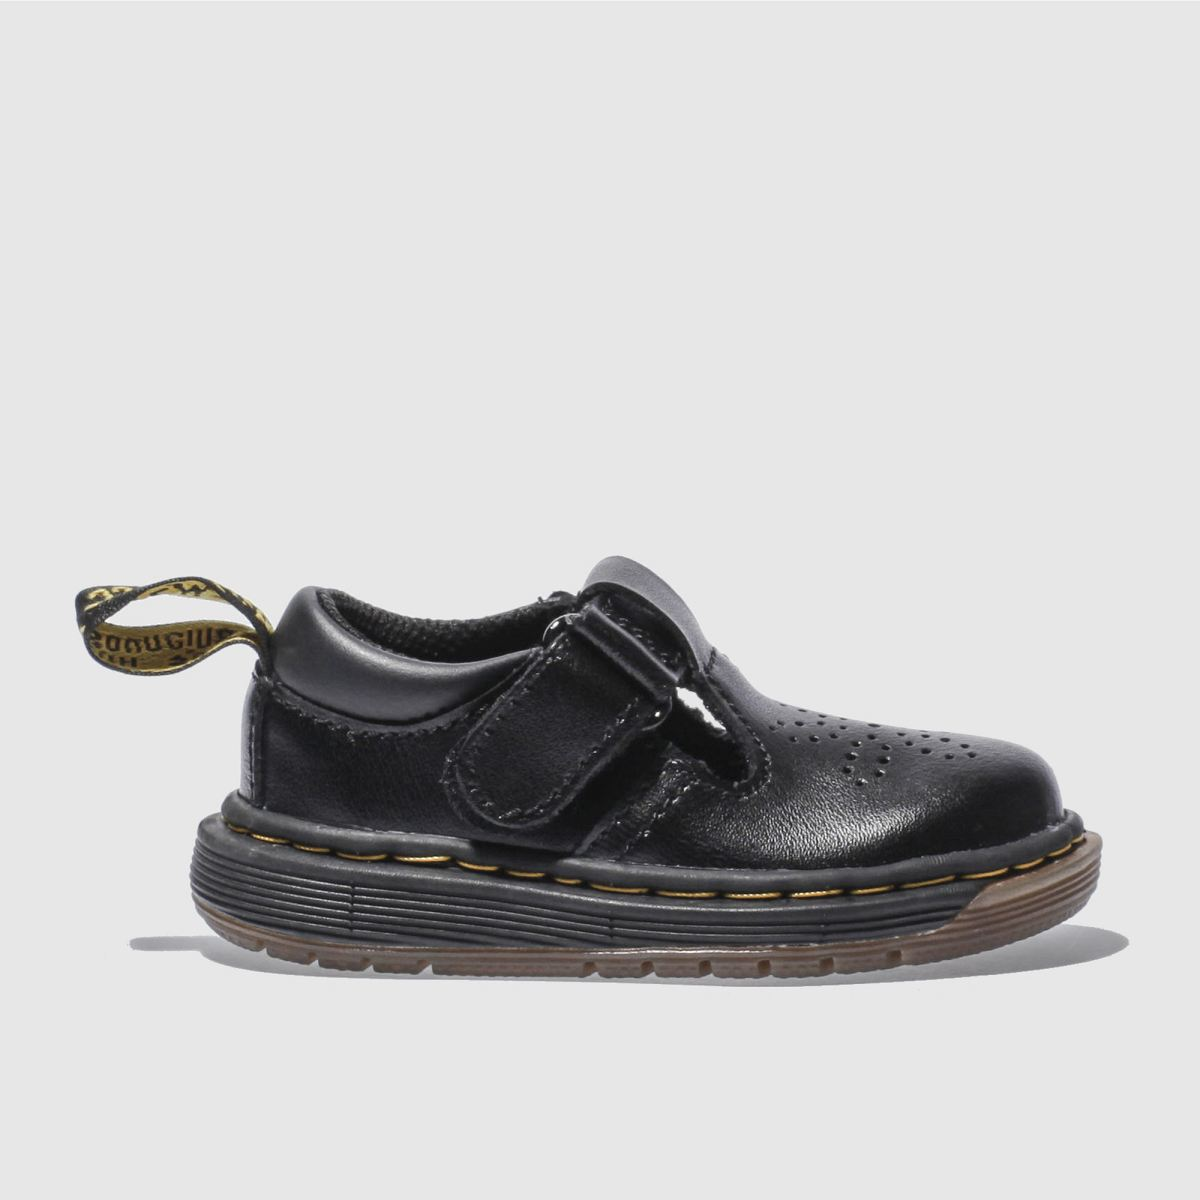 Dr Martens Black Dulice Shoes Toddler